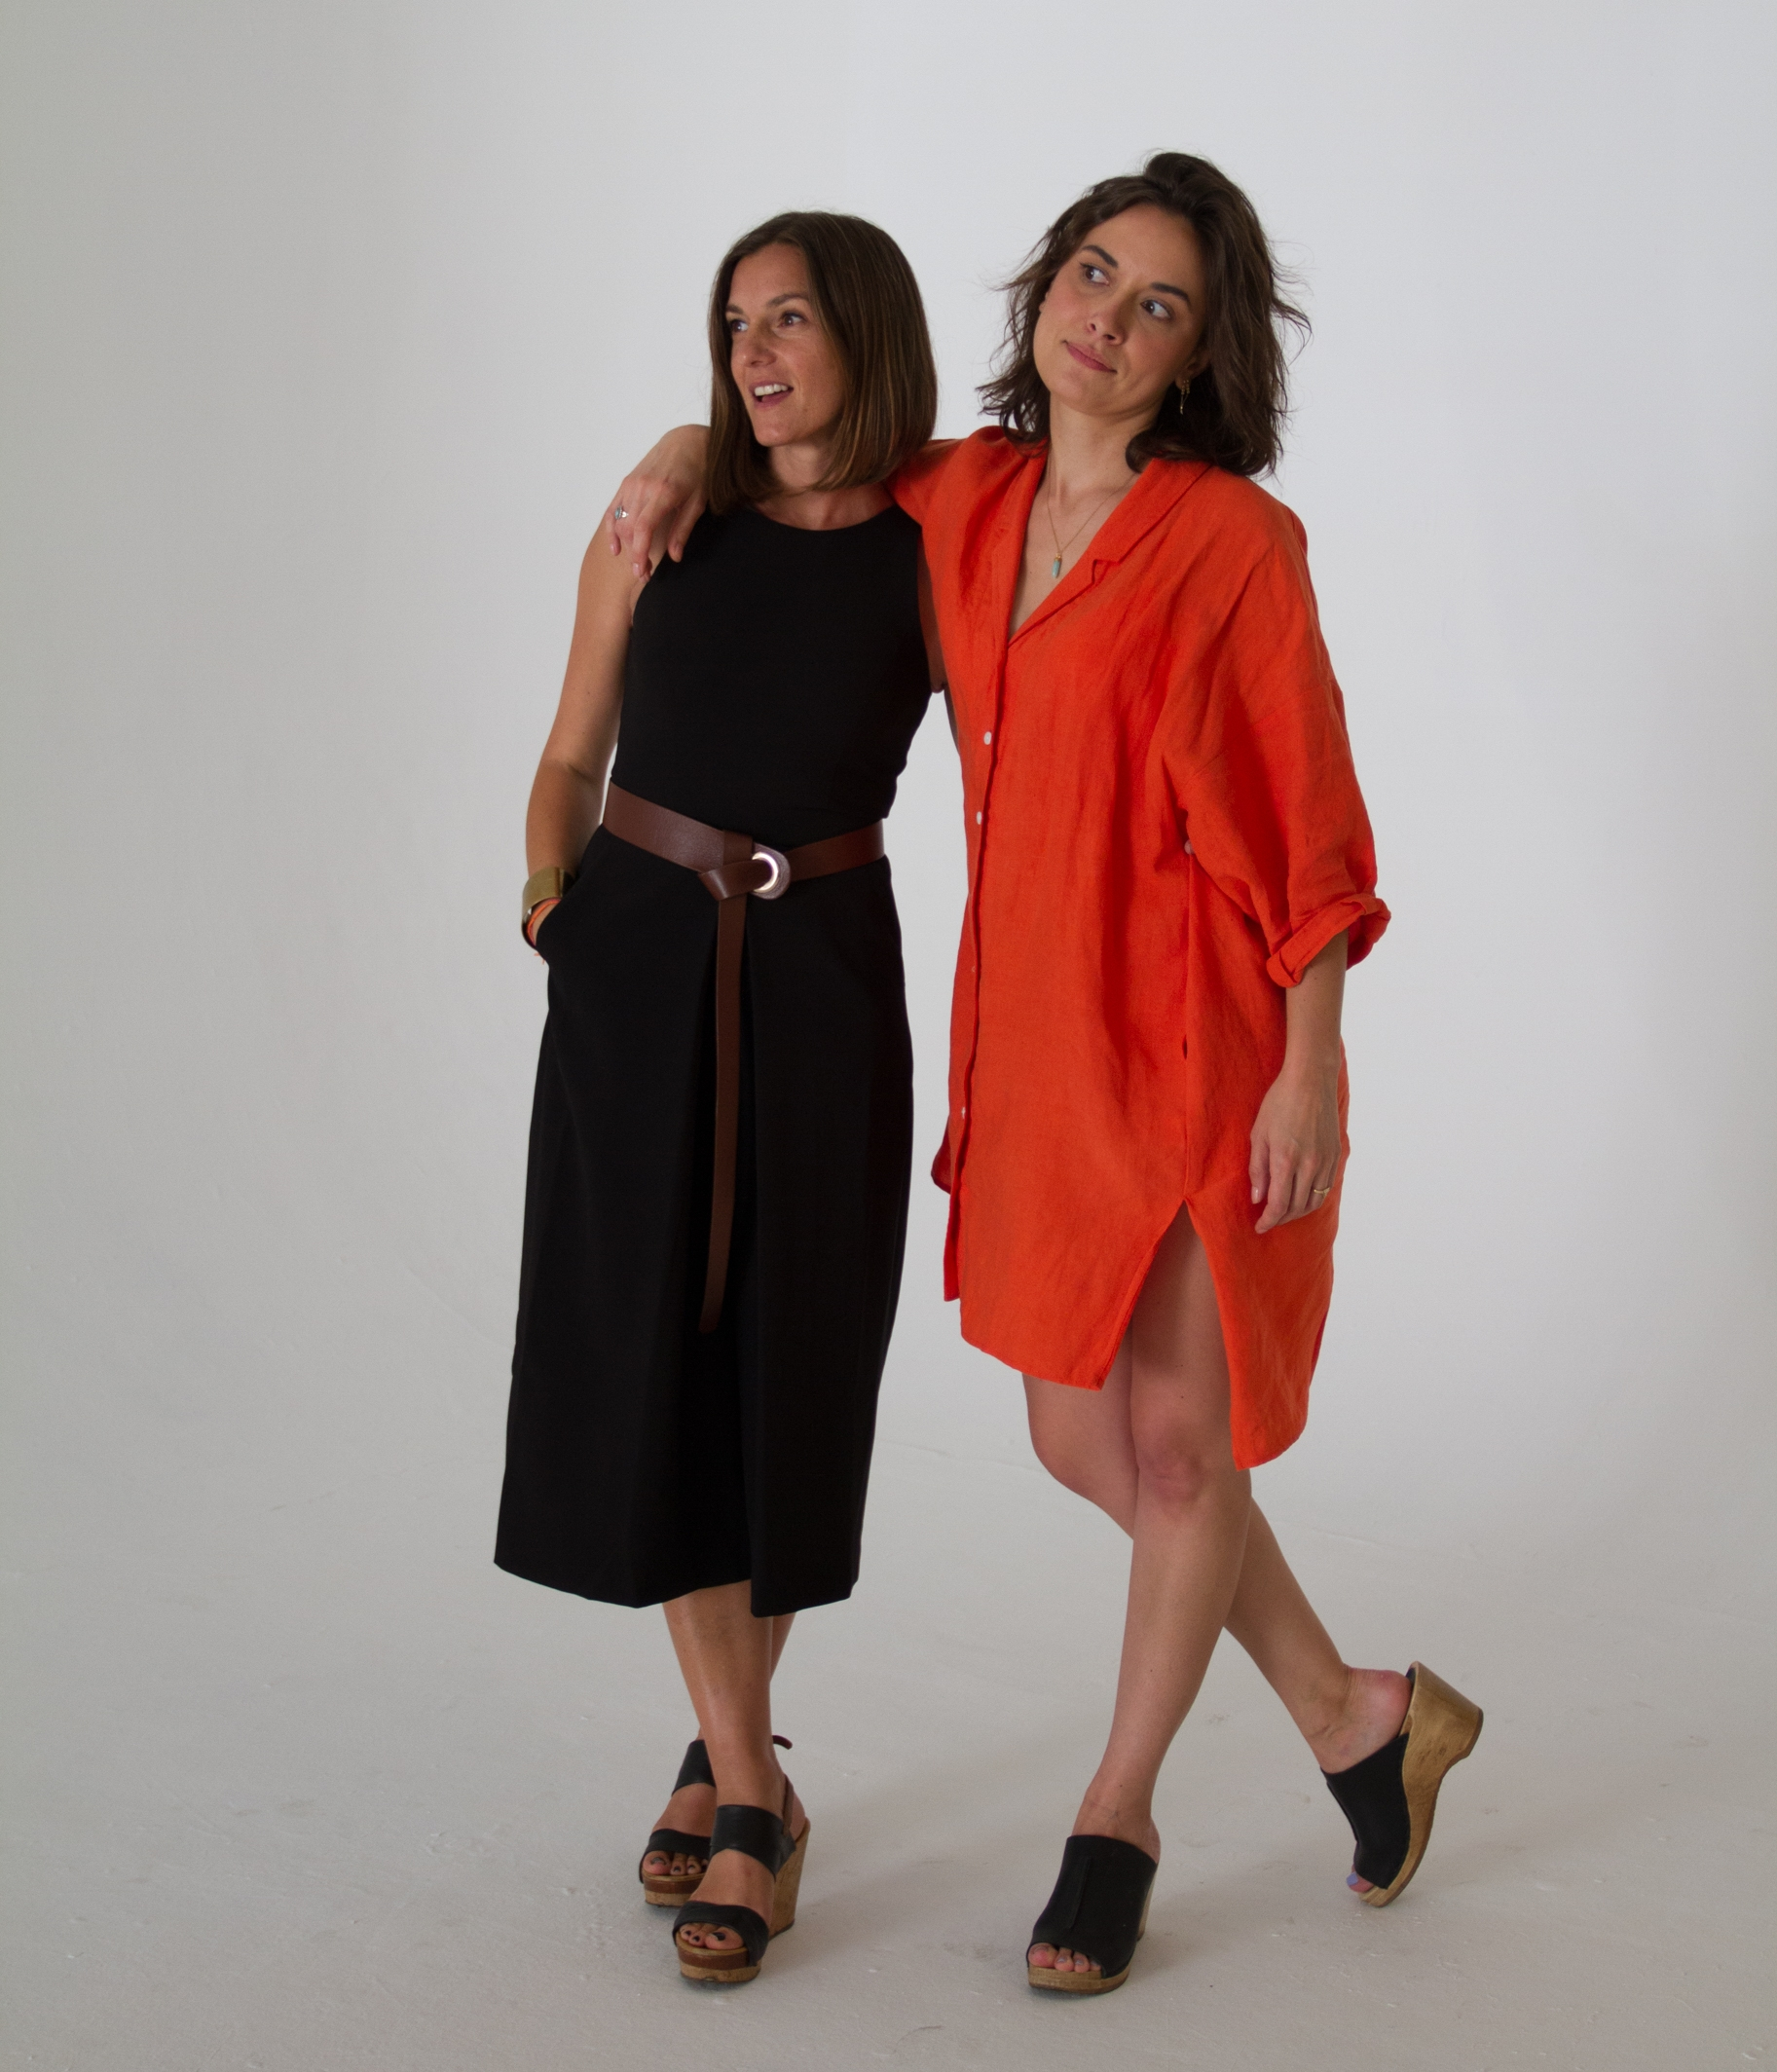 RESET Co-Founders Cora Neumann and Alama Lacour